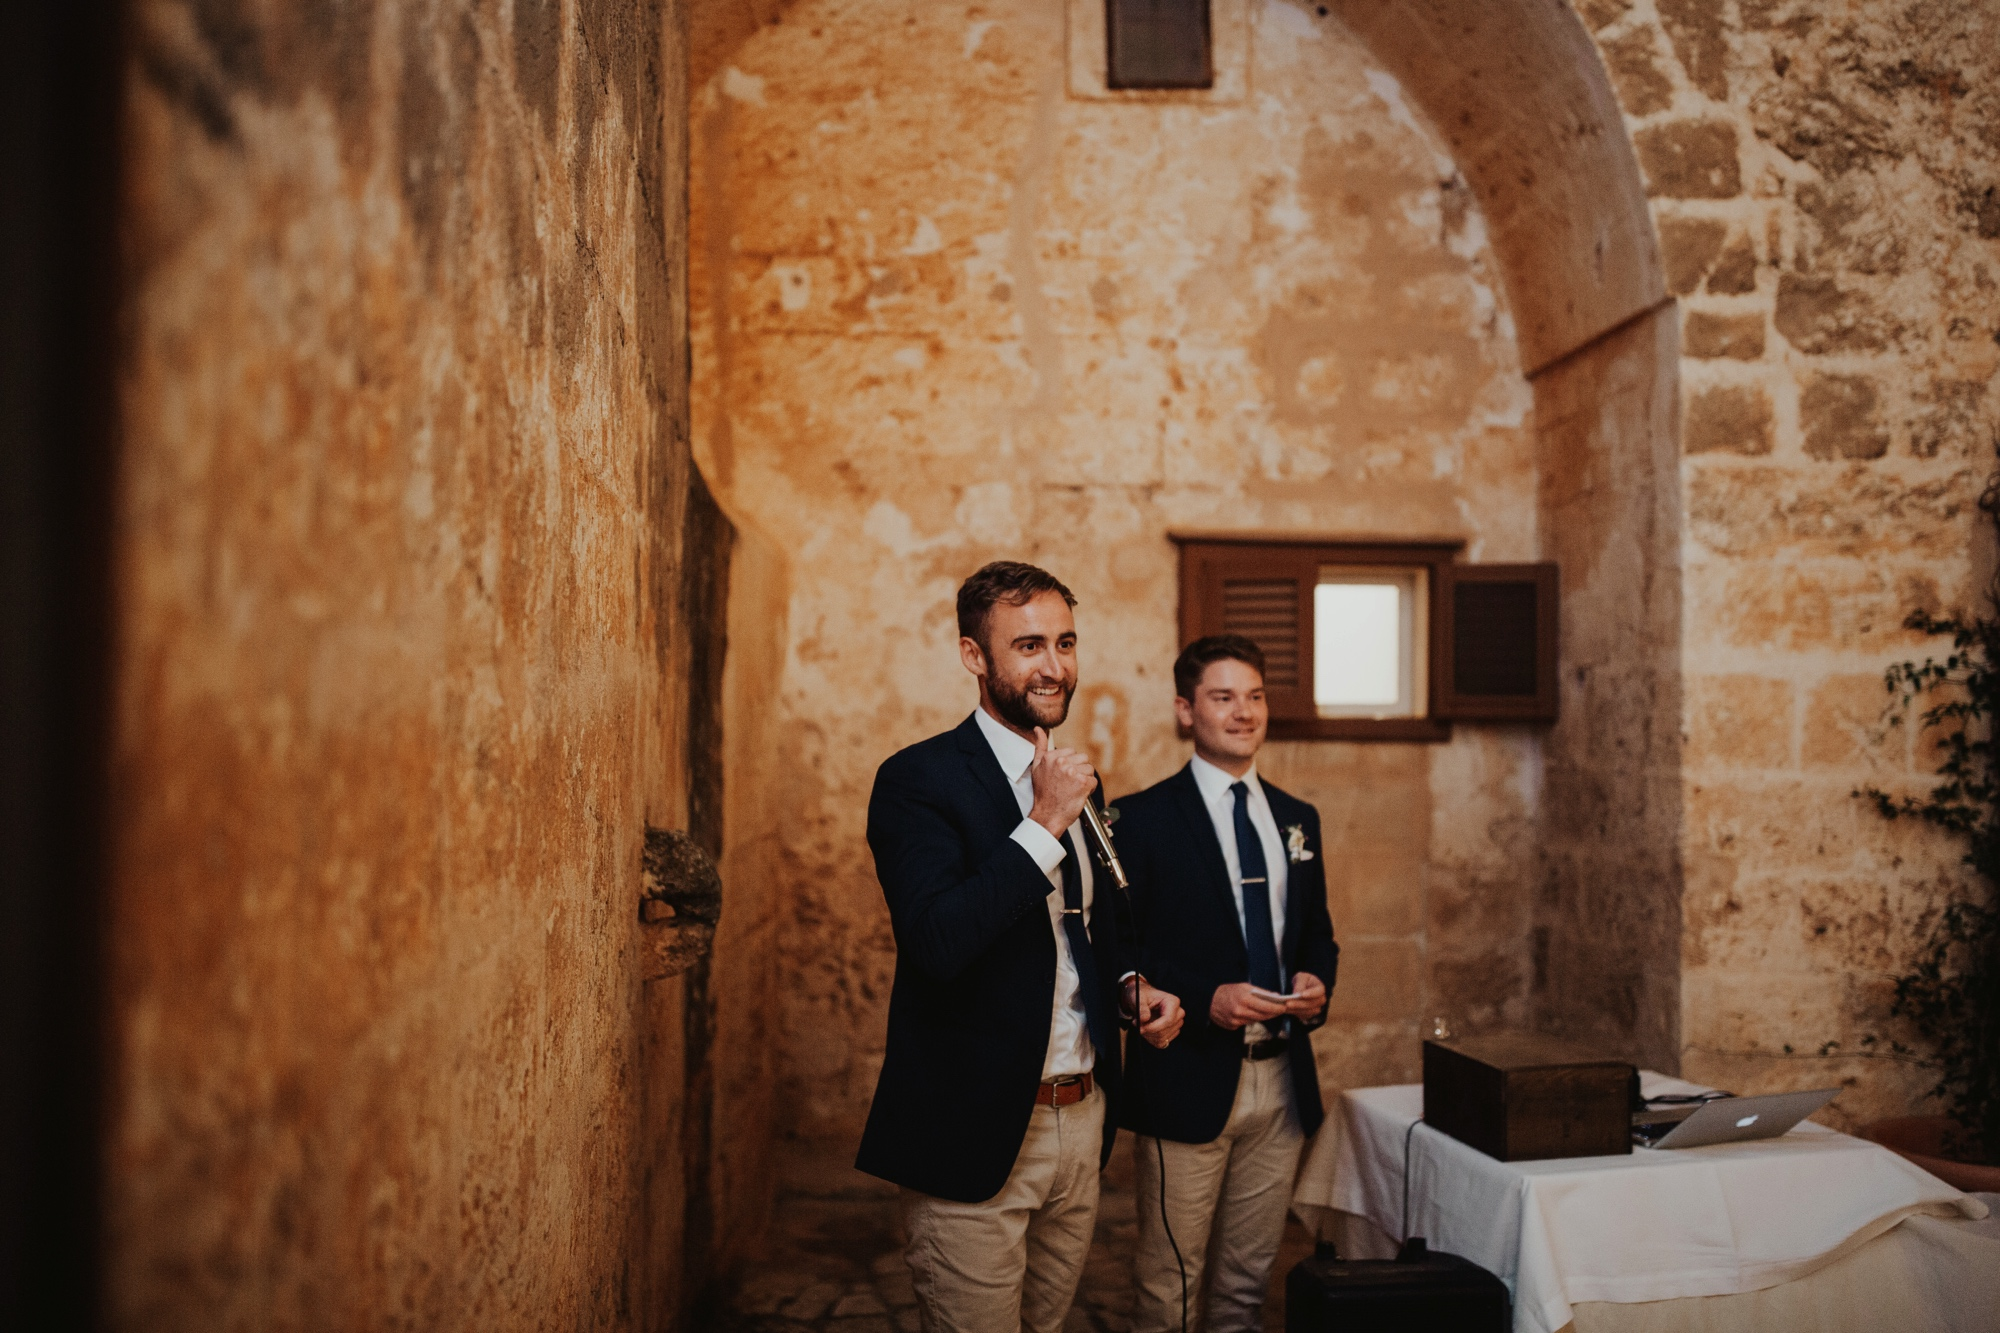 0000000077_Rob and Lucy-920_Weddings_Destination_Italy_got_Just_Engaged.jpg